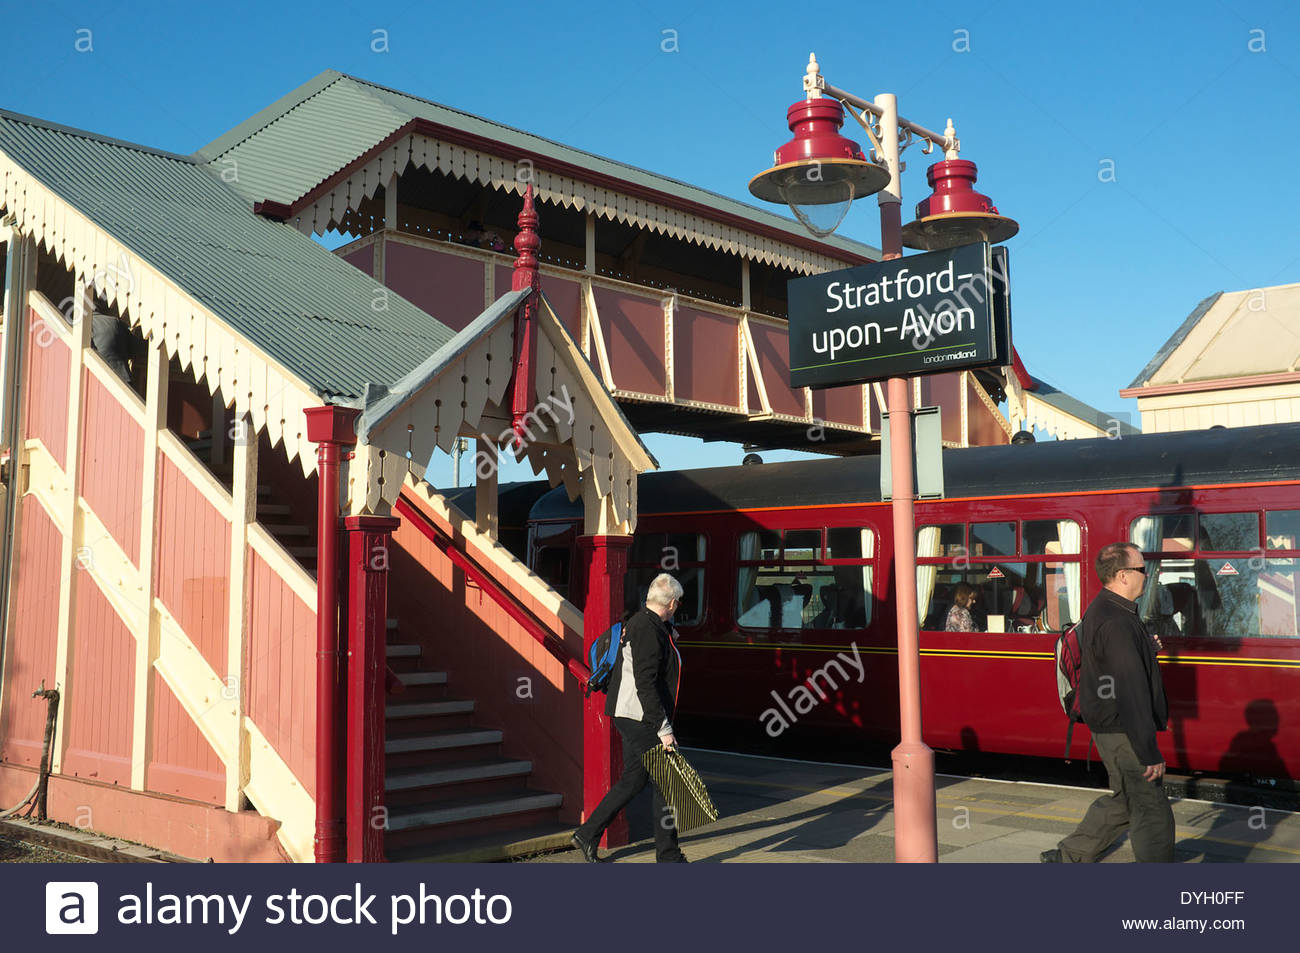 Stratford-upon-Avon railway station, with the passenger footbridge and old style lighting visible. Warwickshire, Stock Photo